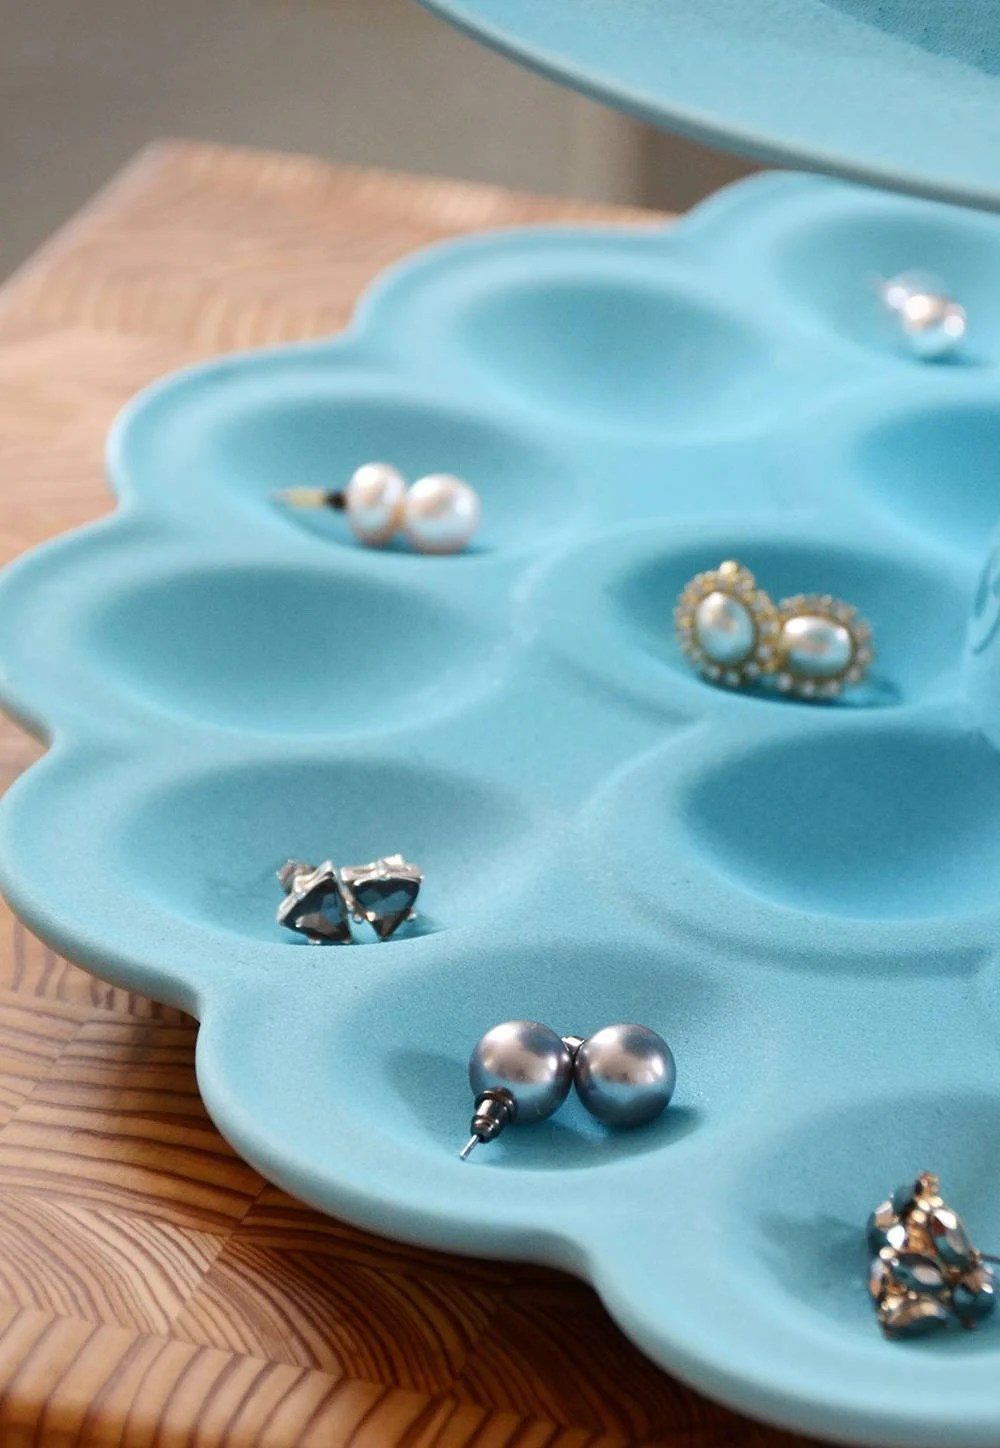 How-To: Easy DIY 3-Tiered Jewelry Organizer